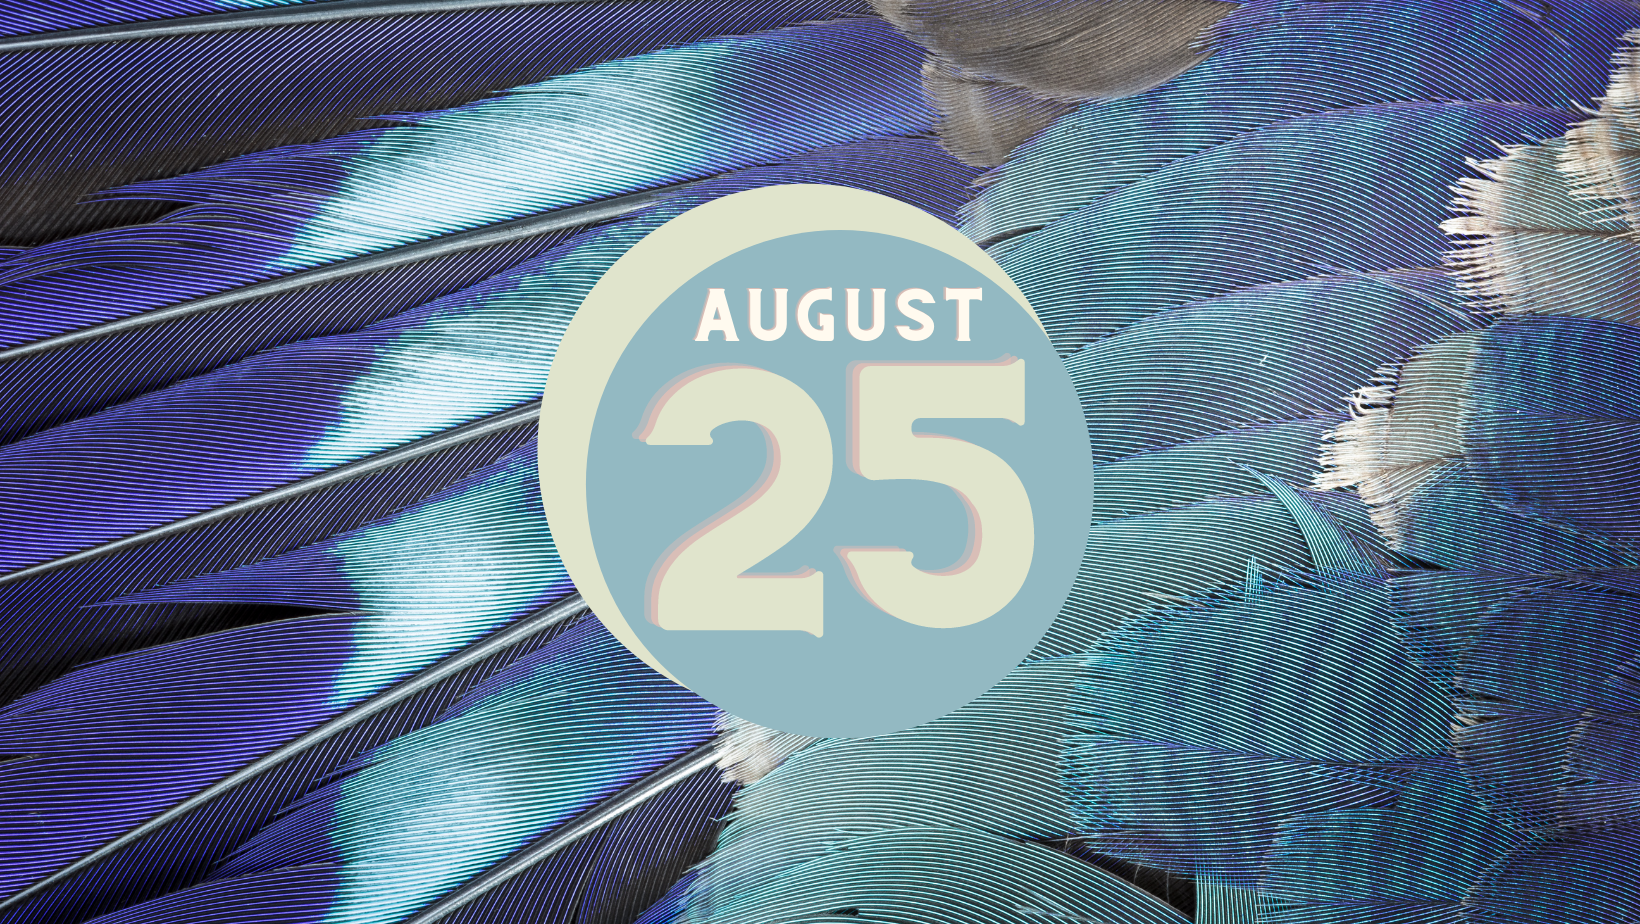 blue and grey feather background, text reads August 25